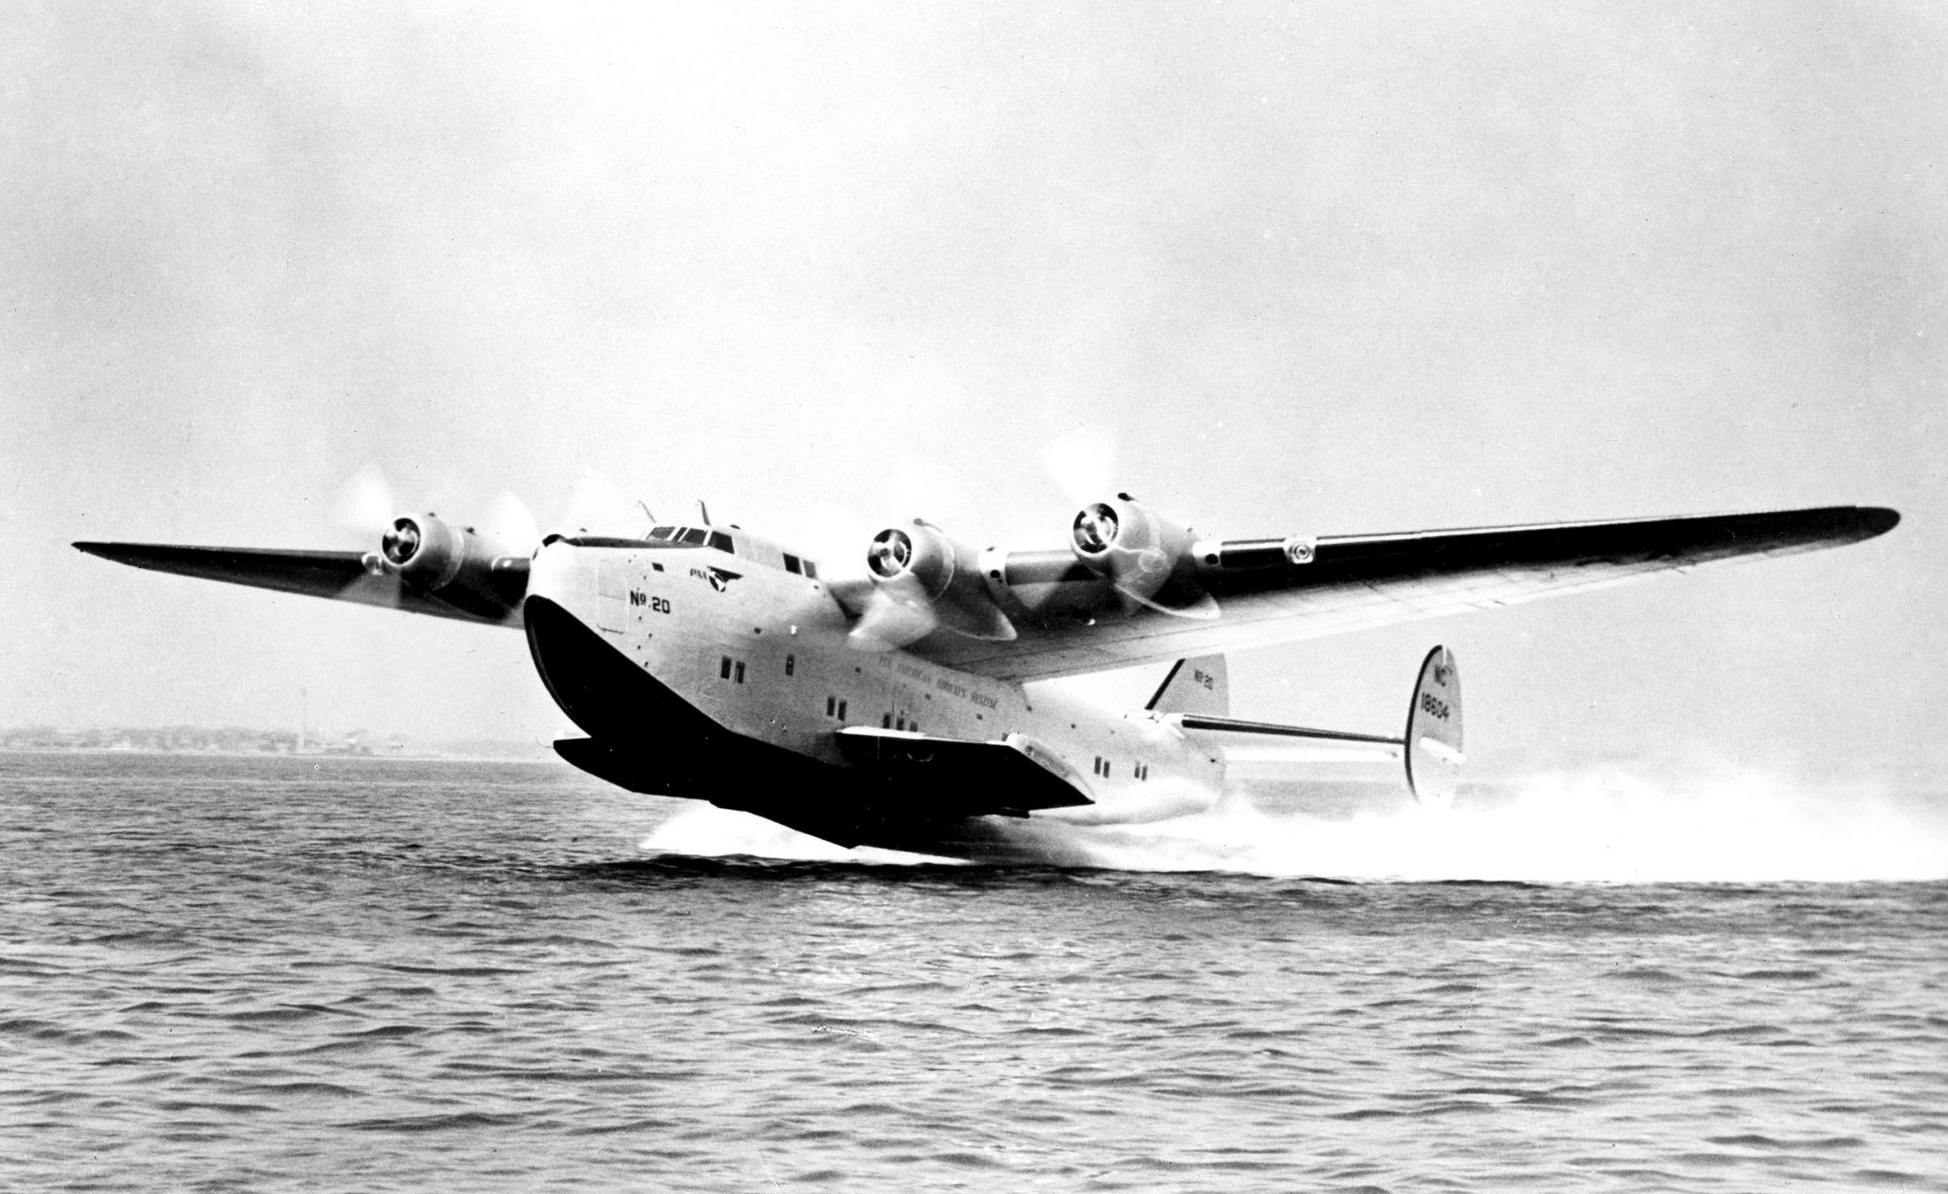 A Pan Am Yankee Clipper.